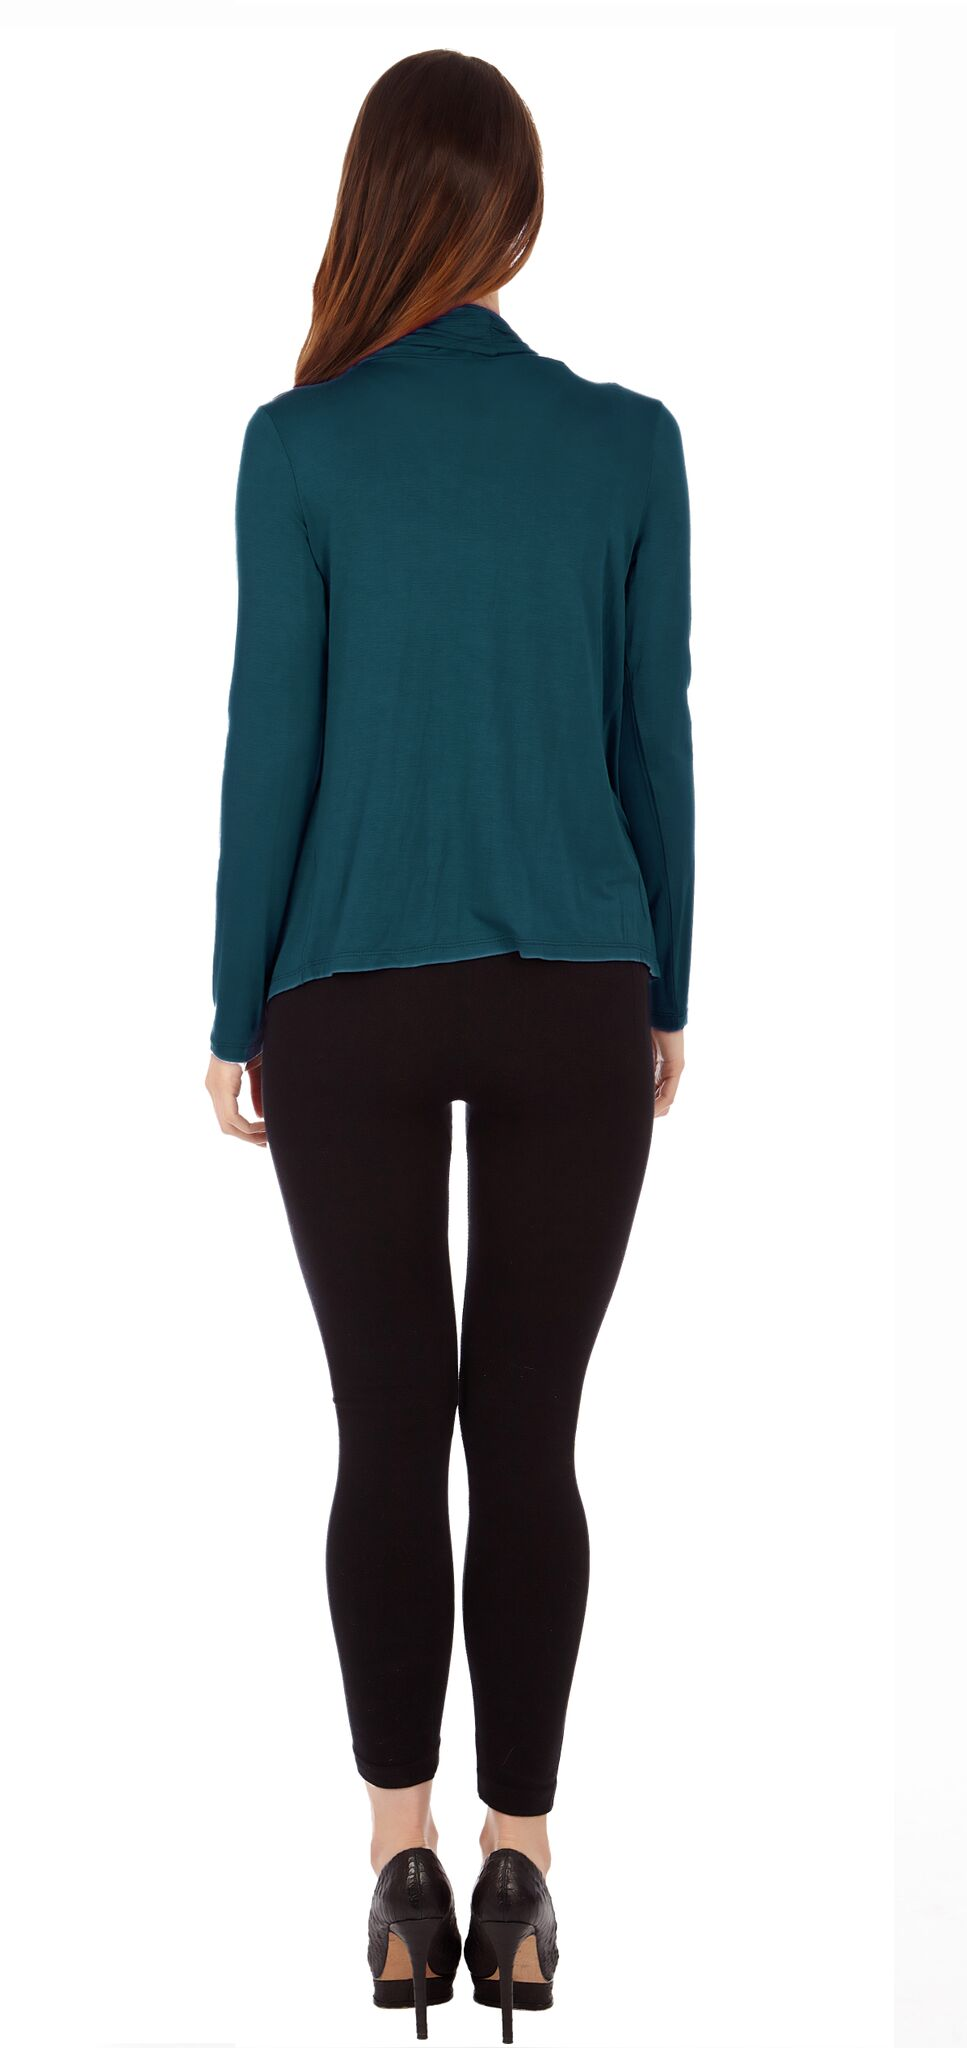 Jade Criss Cross Cardigan Sweaters - Home Goods Galore